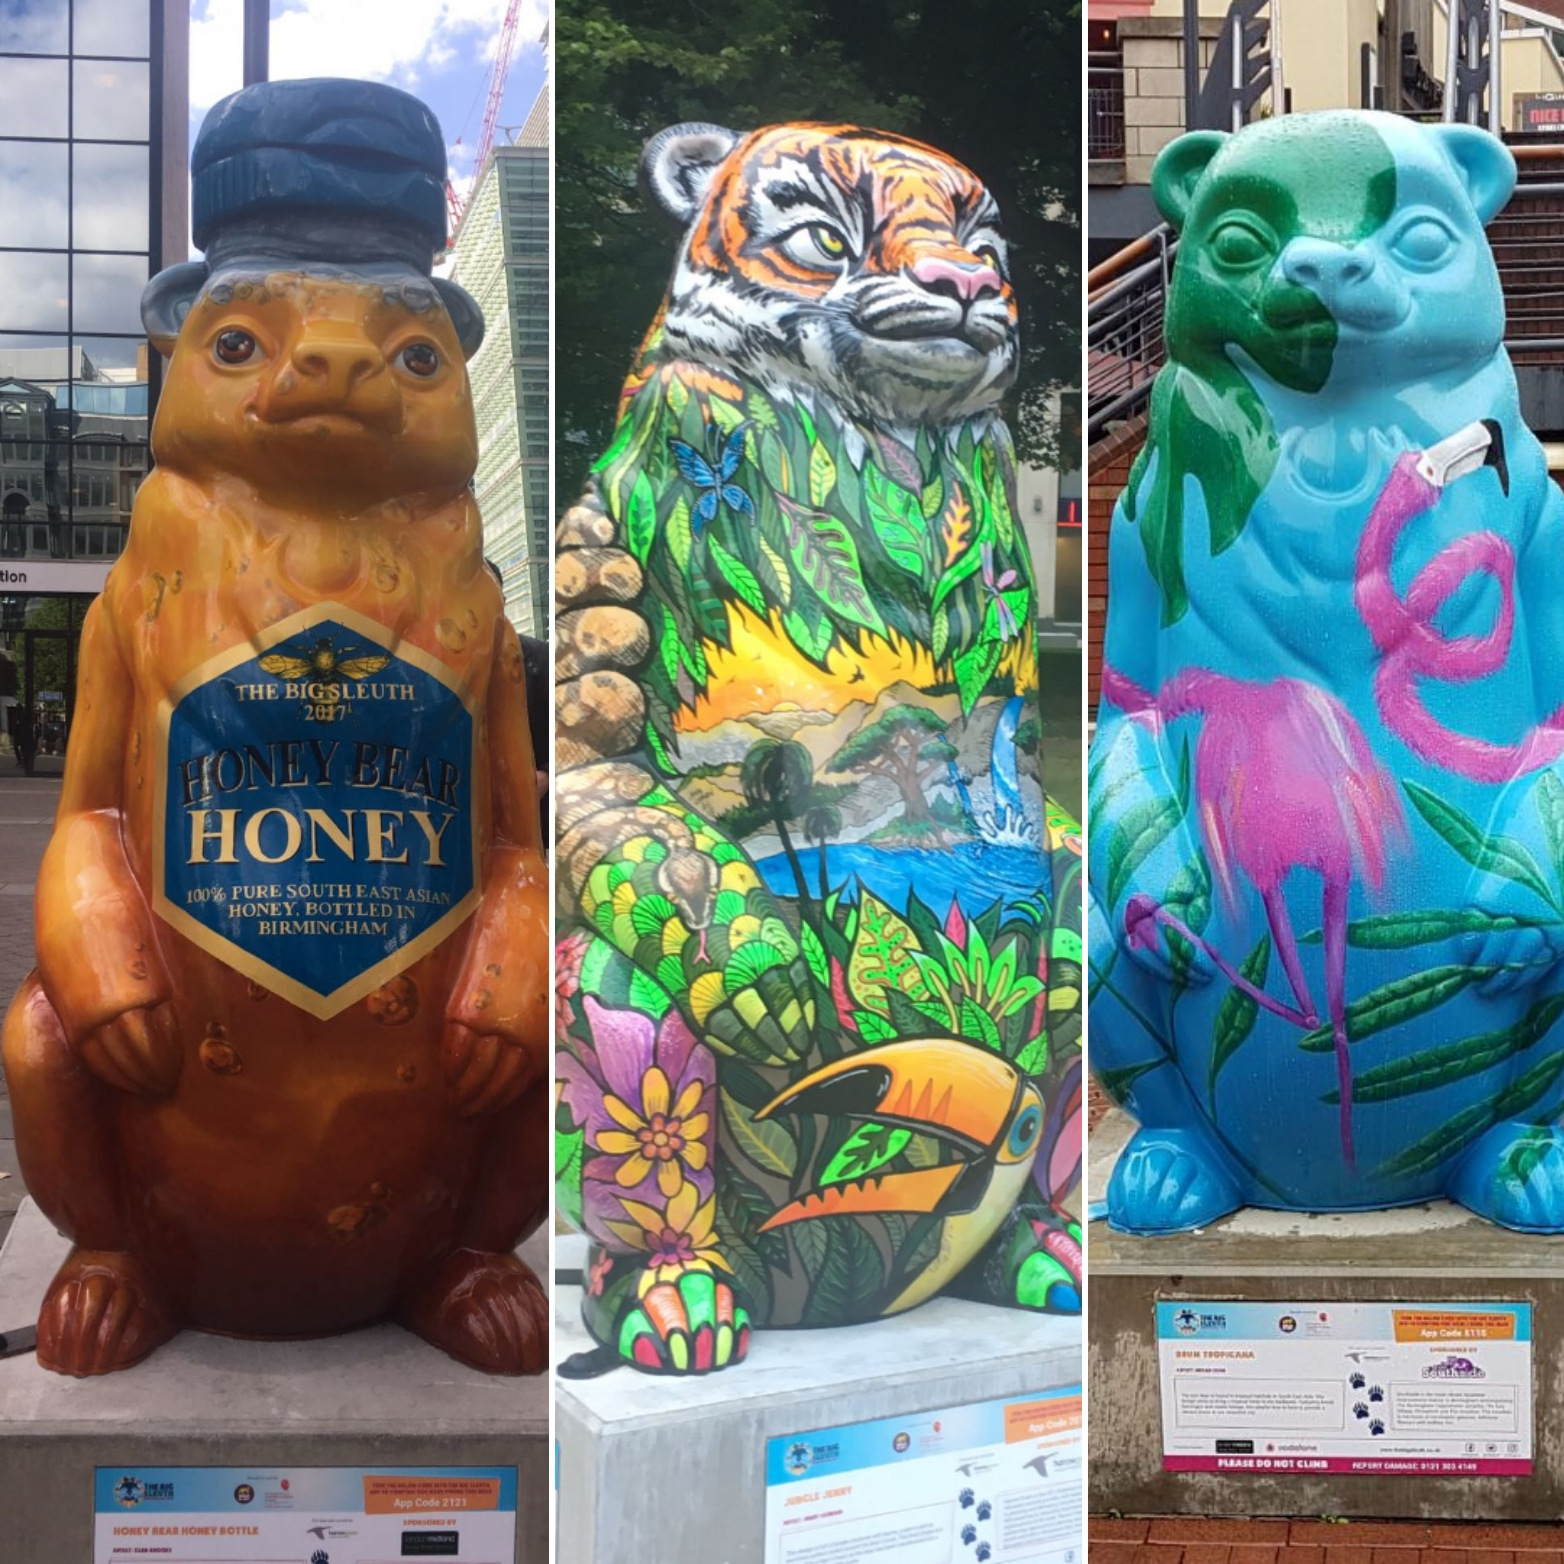 The Big Sleuth Jask Creative Marketing Stories